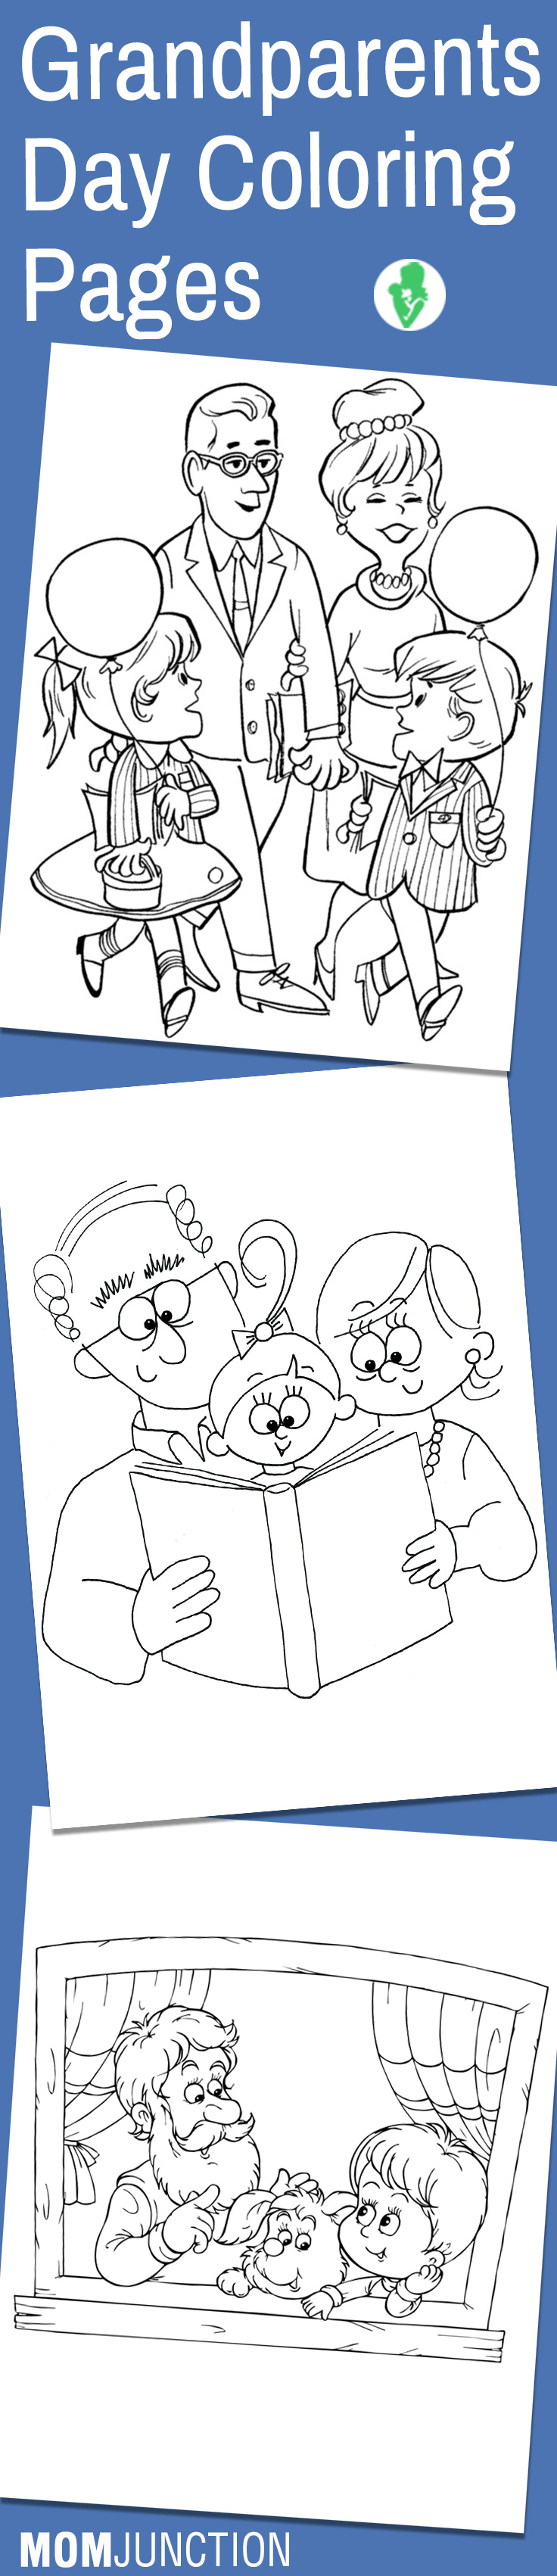 Coloring Pages Grandparents Day Printable Coloring Pages top 10 grandparents day coloring pages for your little ones